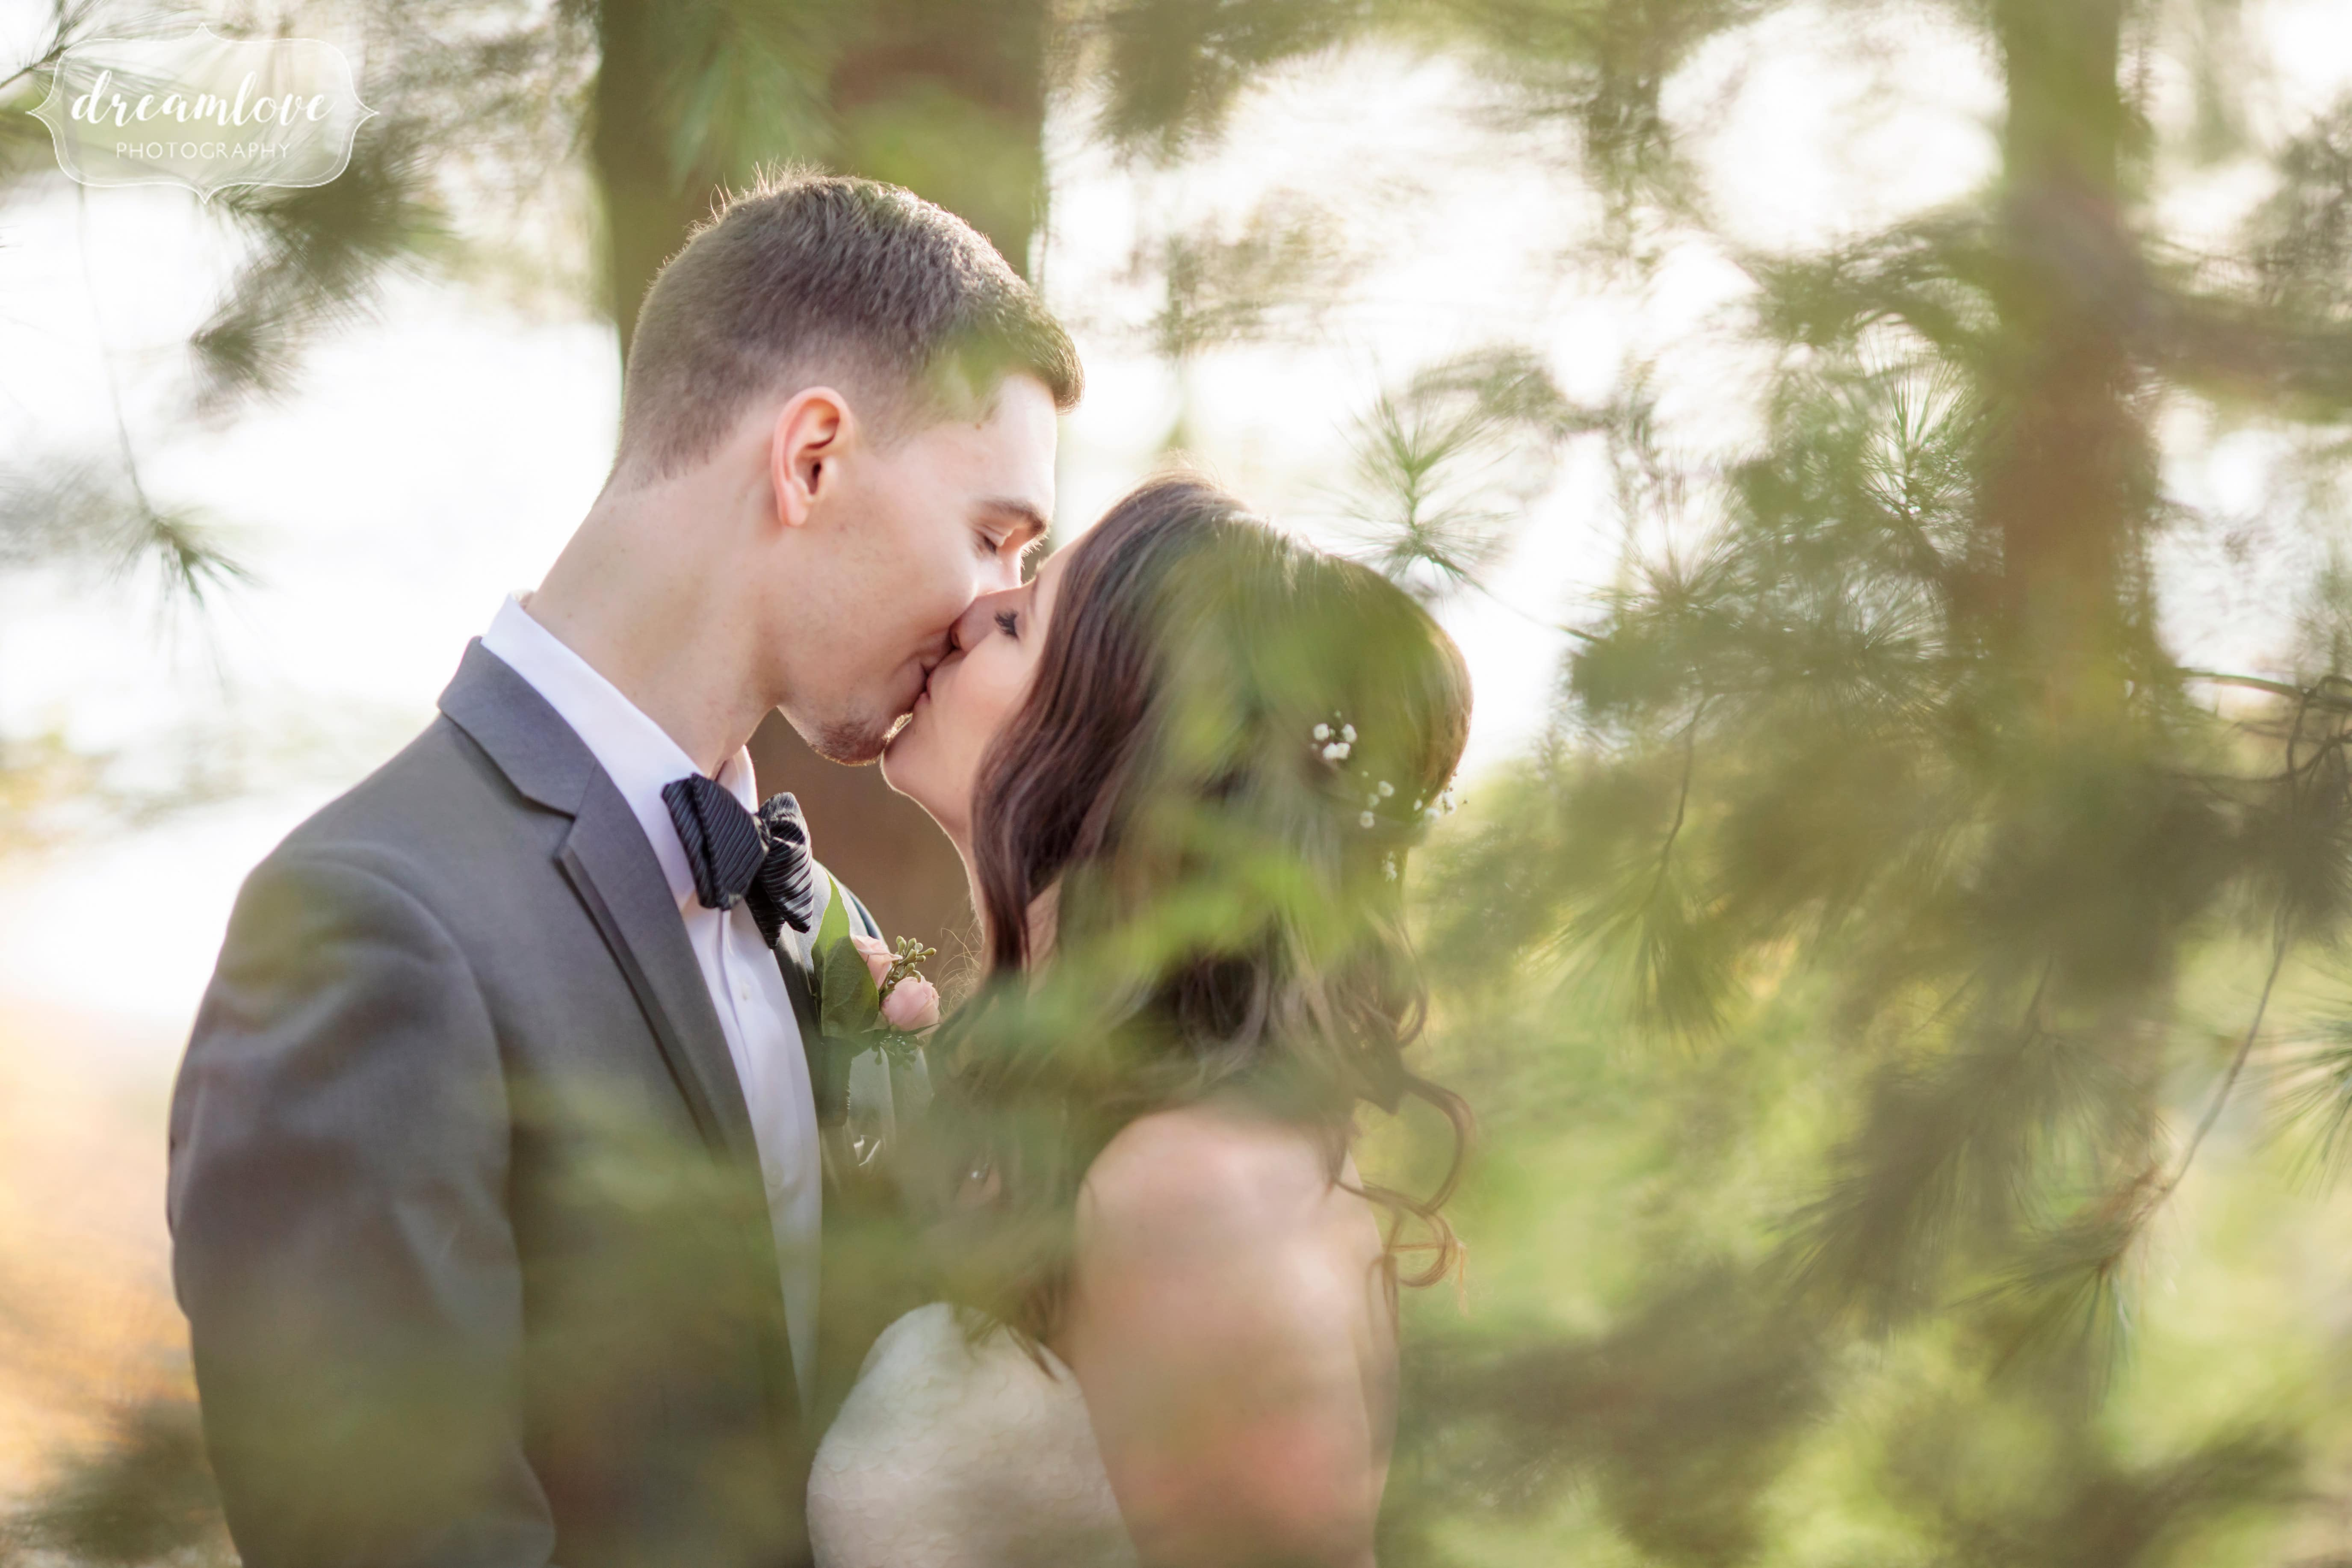 The bride and groom kissing under pine trees at the Crystal Lake Pavilion wedding venue.